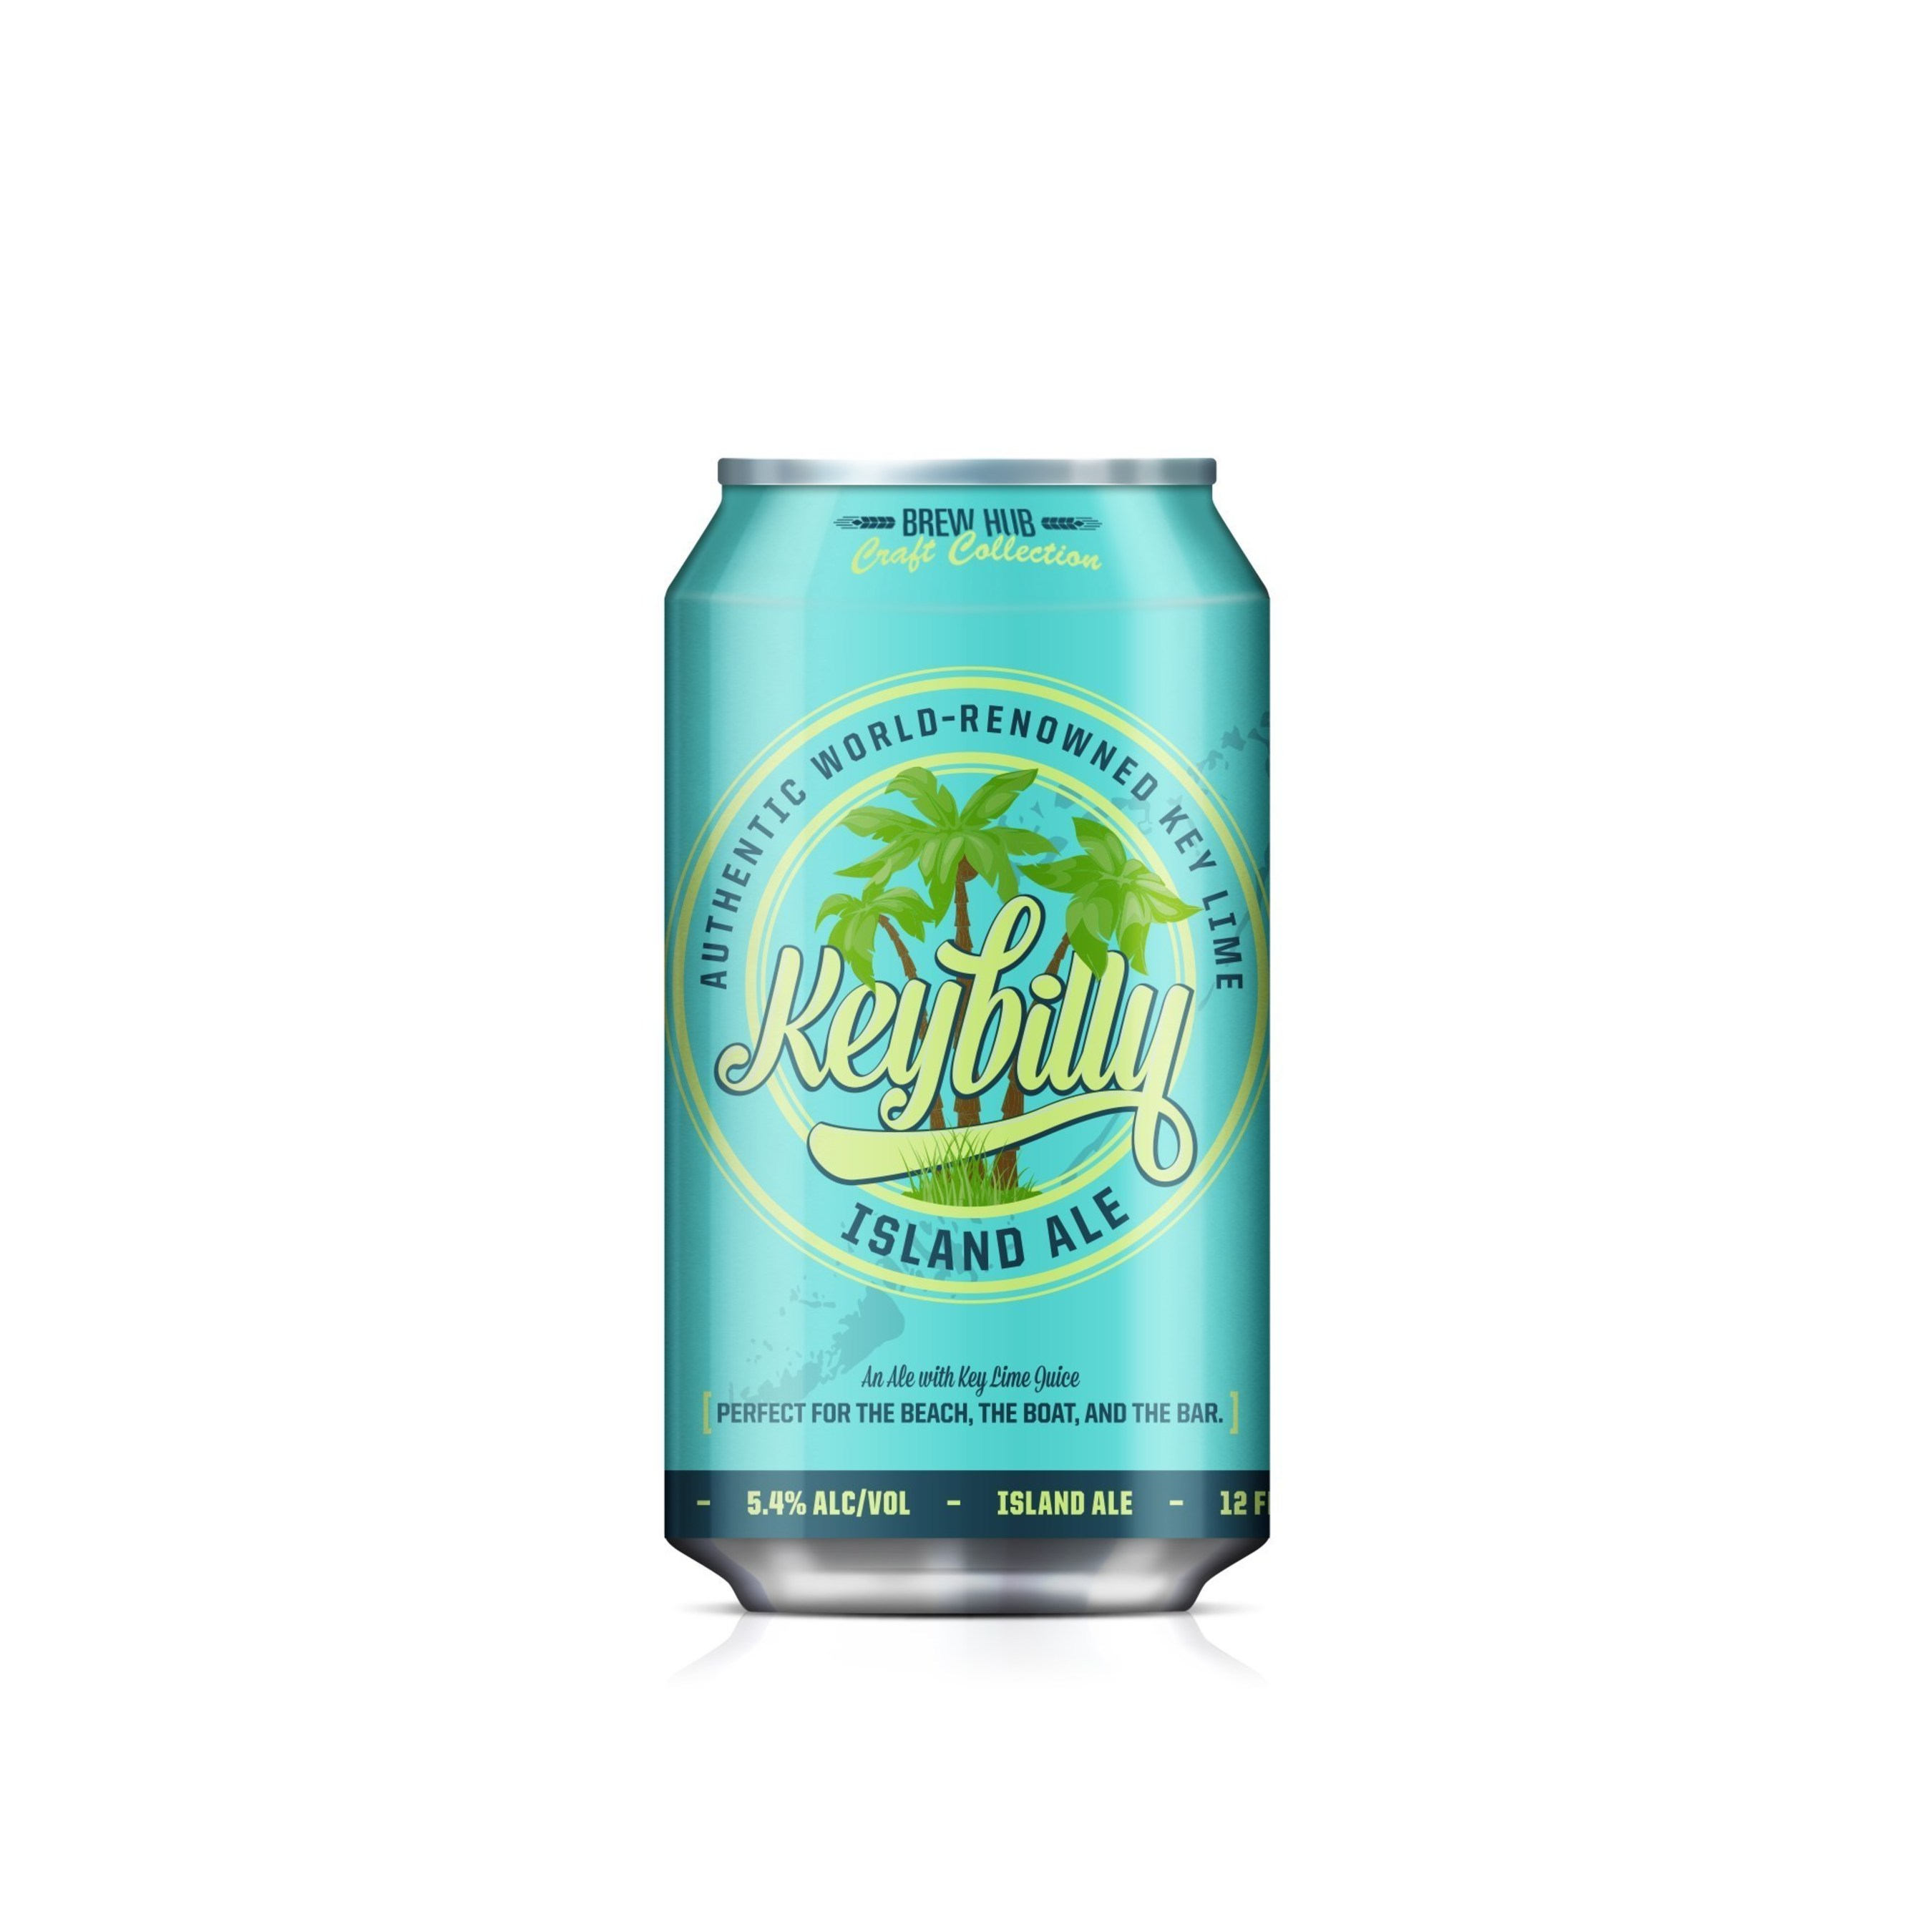 Twelve-ounce can of Keybilly Island Ale brewed at Brew Hub in Lakeland, Florida.